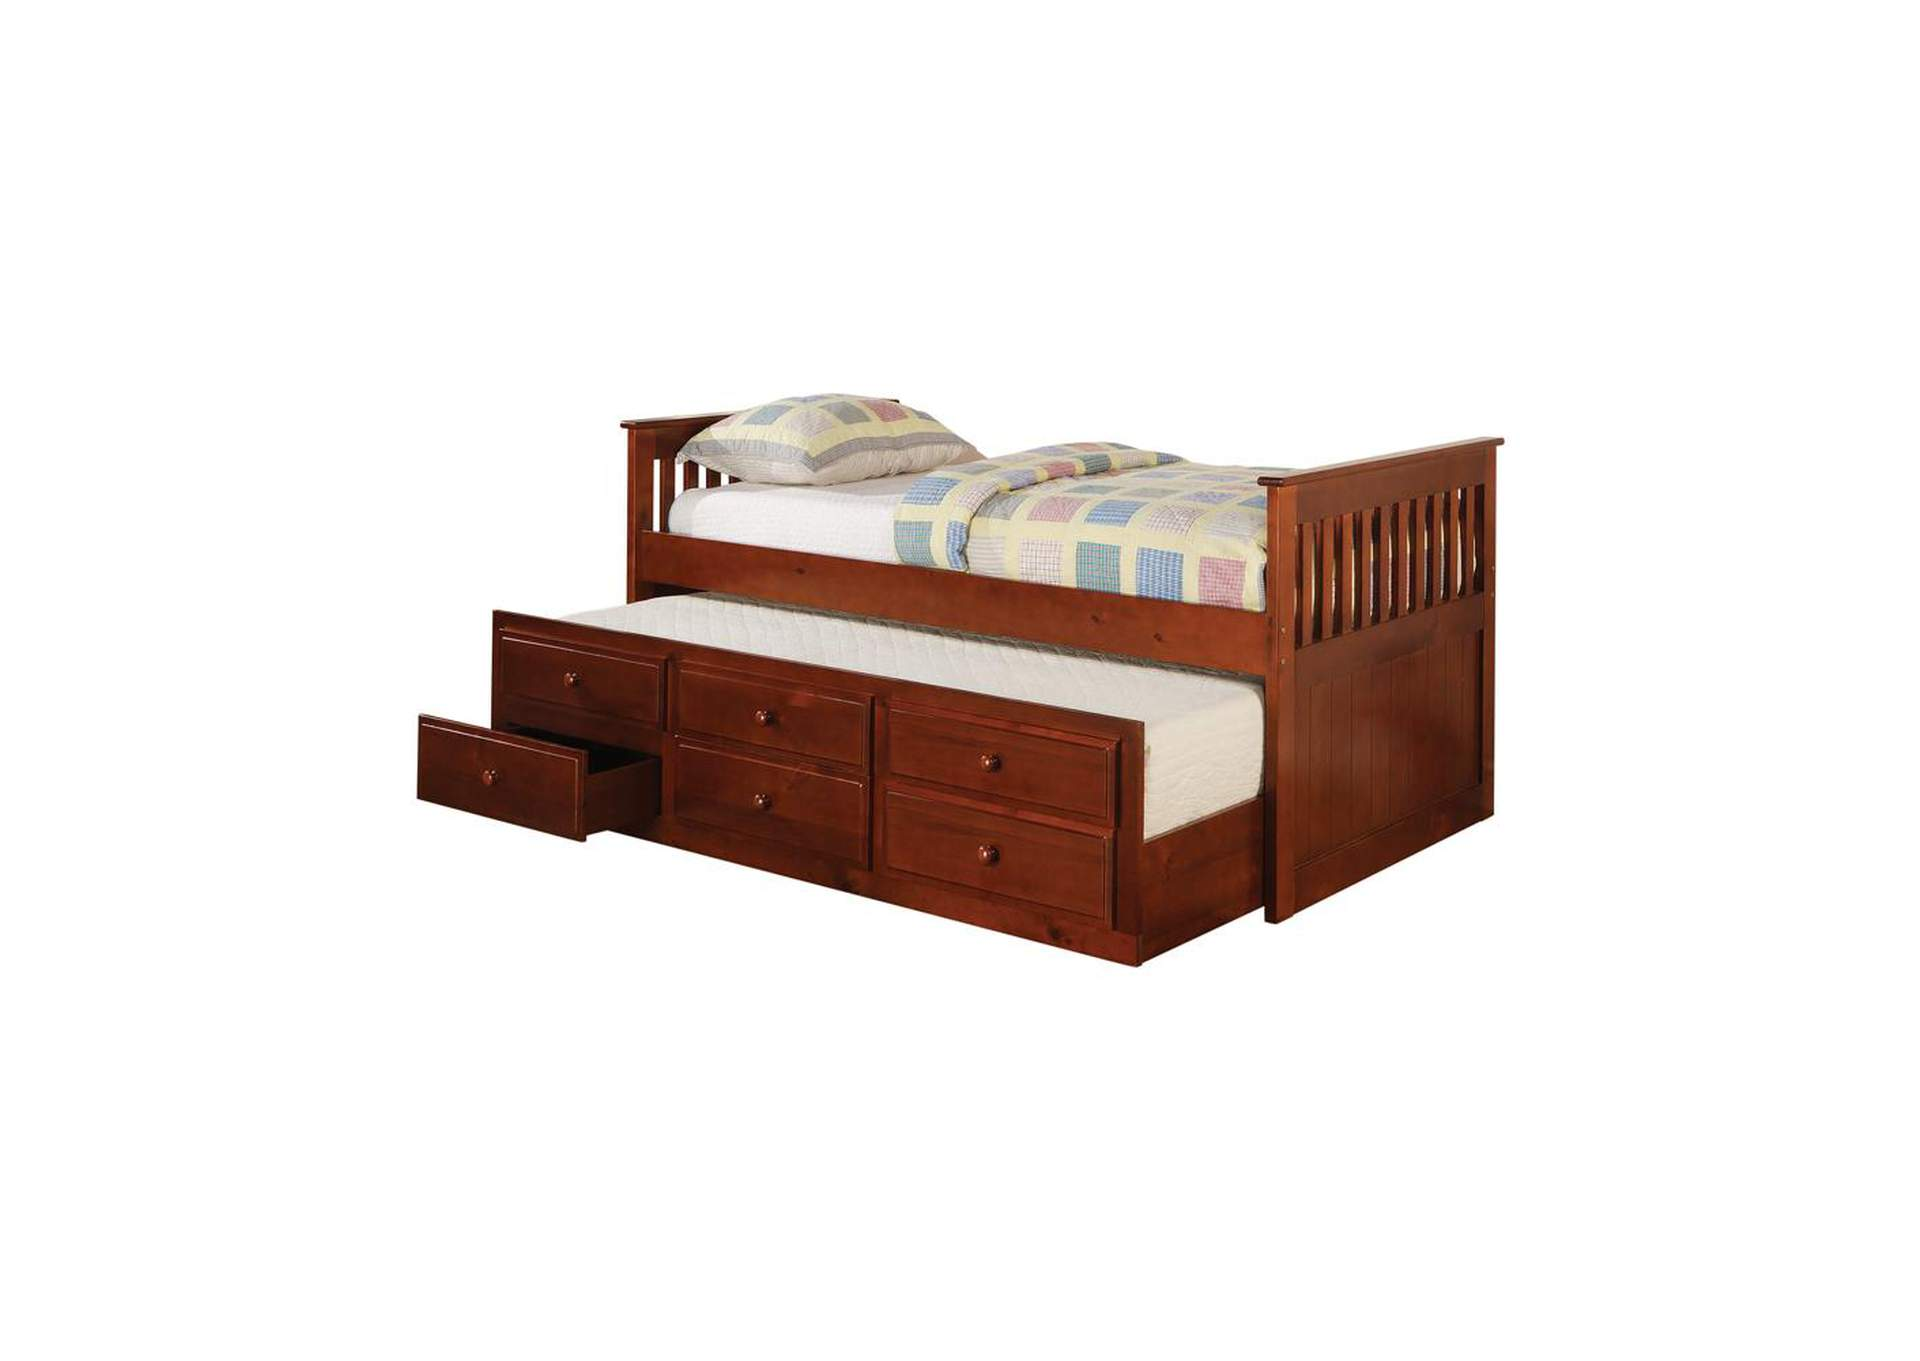 Redwood Transitional Cherry Twin Daybed,Coaster Furniture